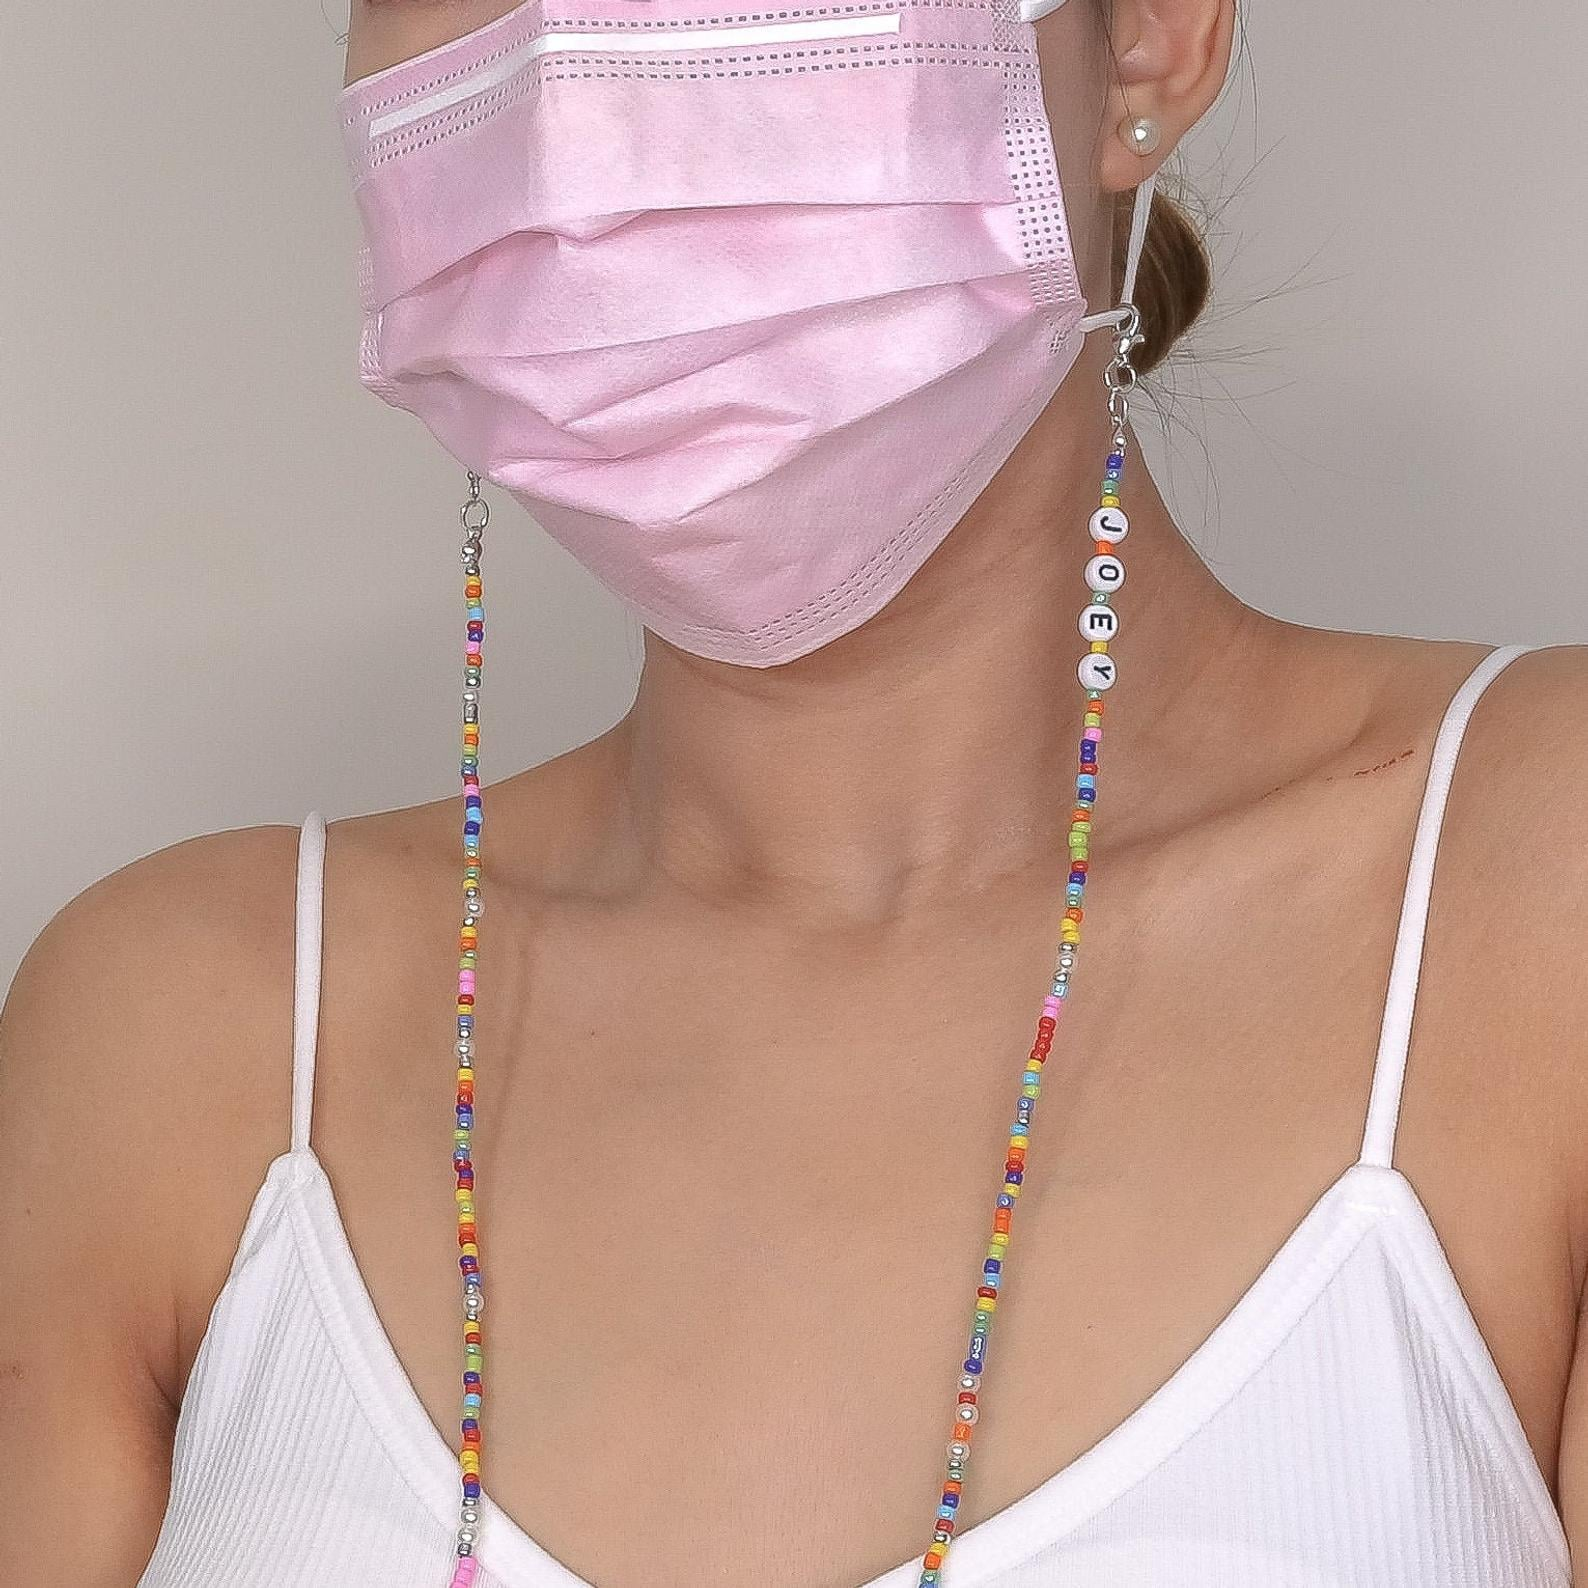 Beaded Mask Chain Holder | 13 Face-Mask Chains That Are Both Cute and  Practical | POPSUGAR Fashion Photo 2